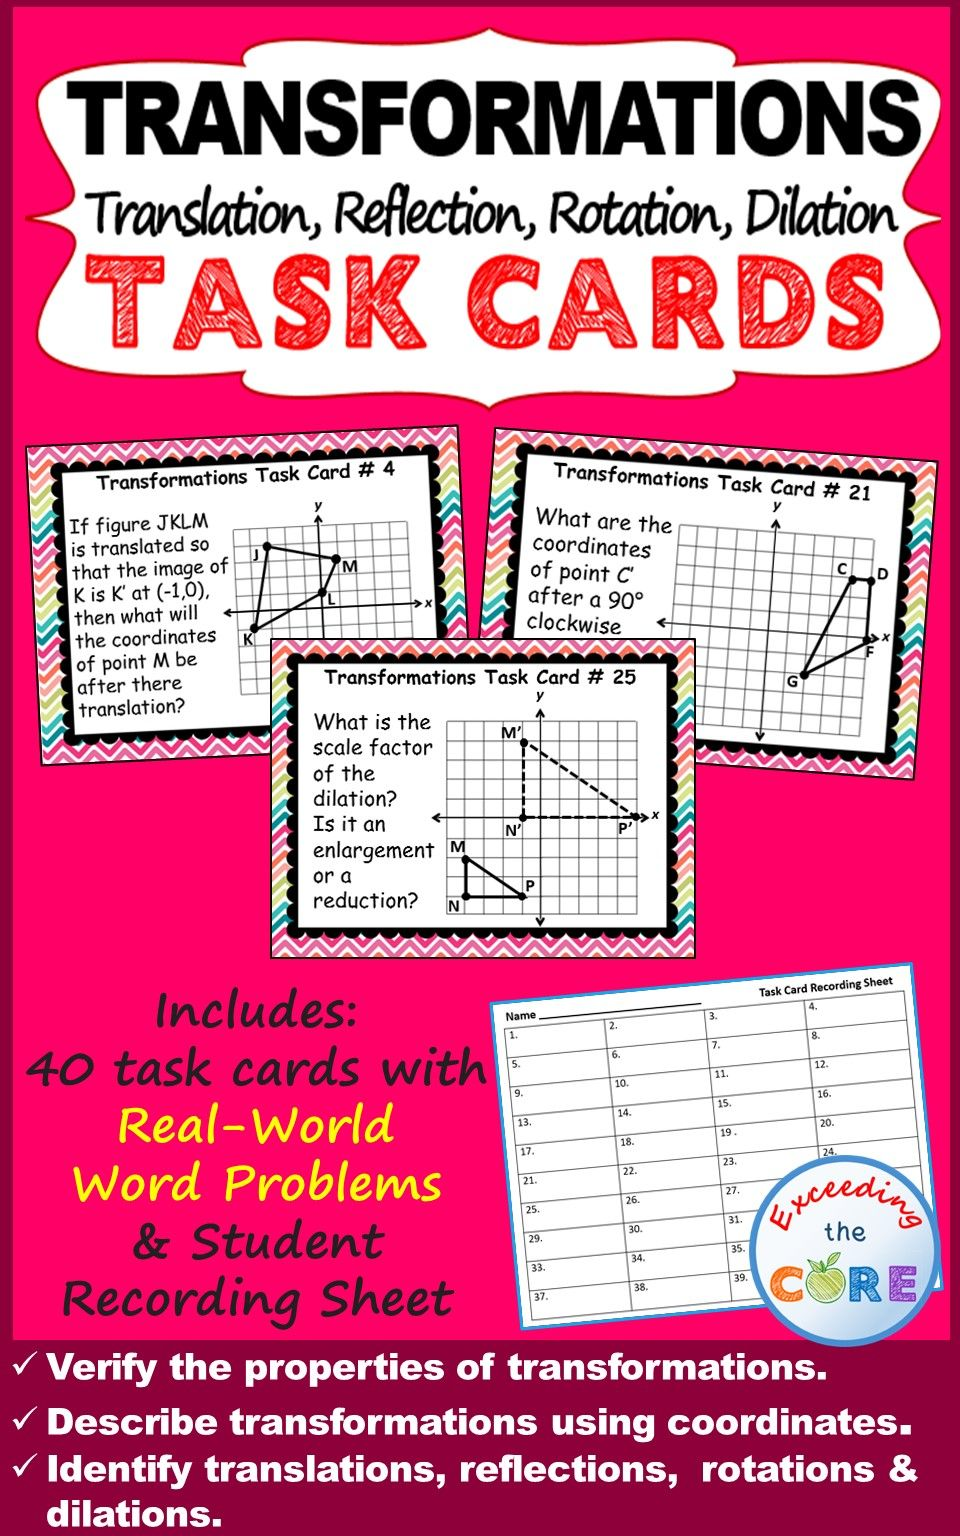 TRANSFORMATIONS Translate, Reflect, Rotate, Dilate - Task ...